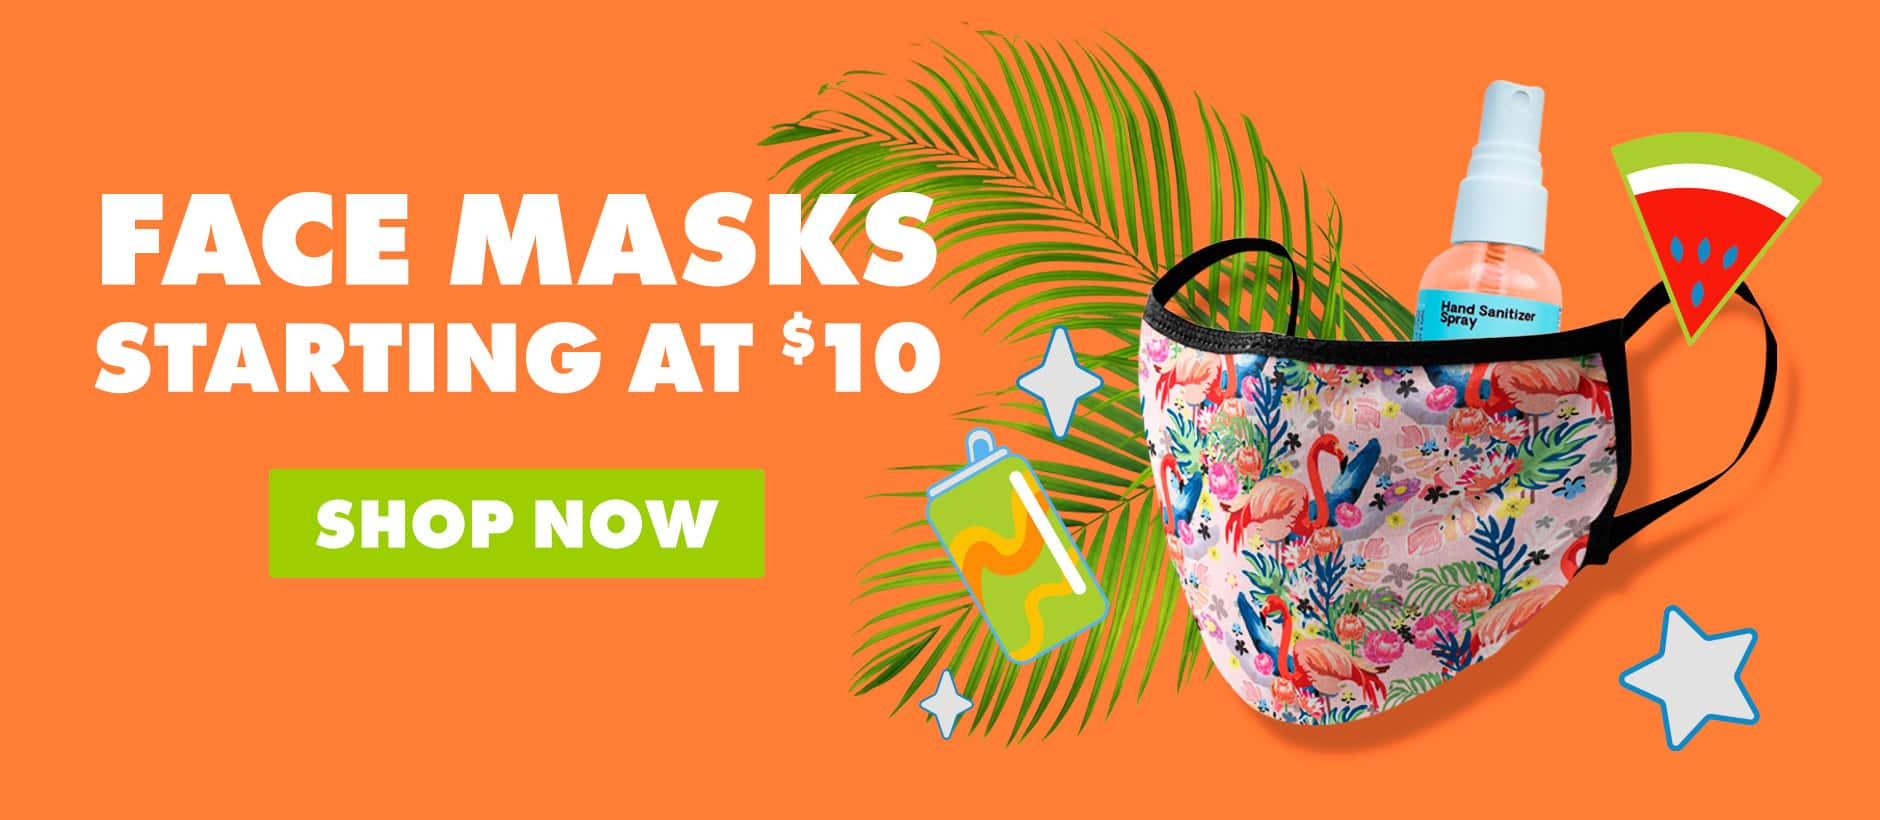 Shop Face Masks starting at $10